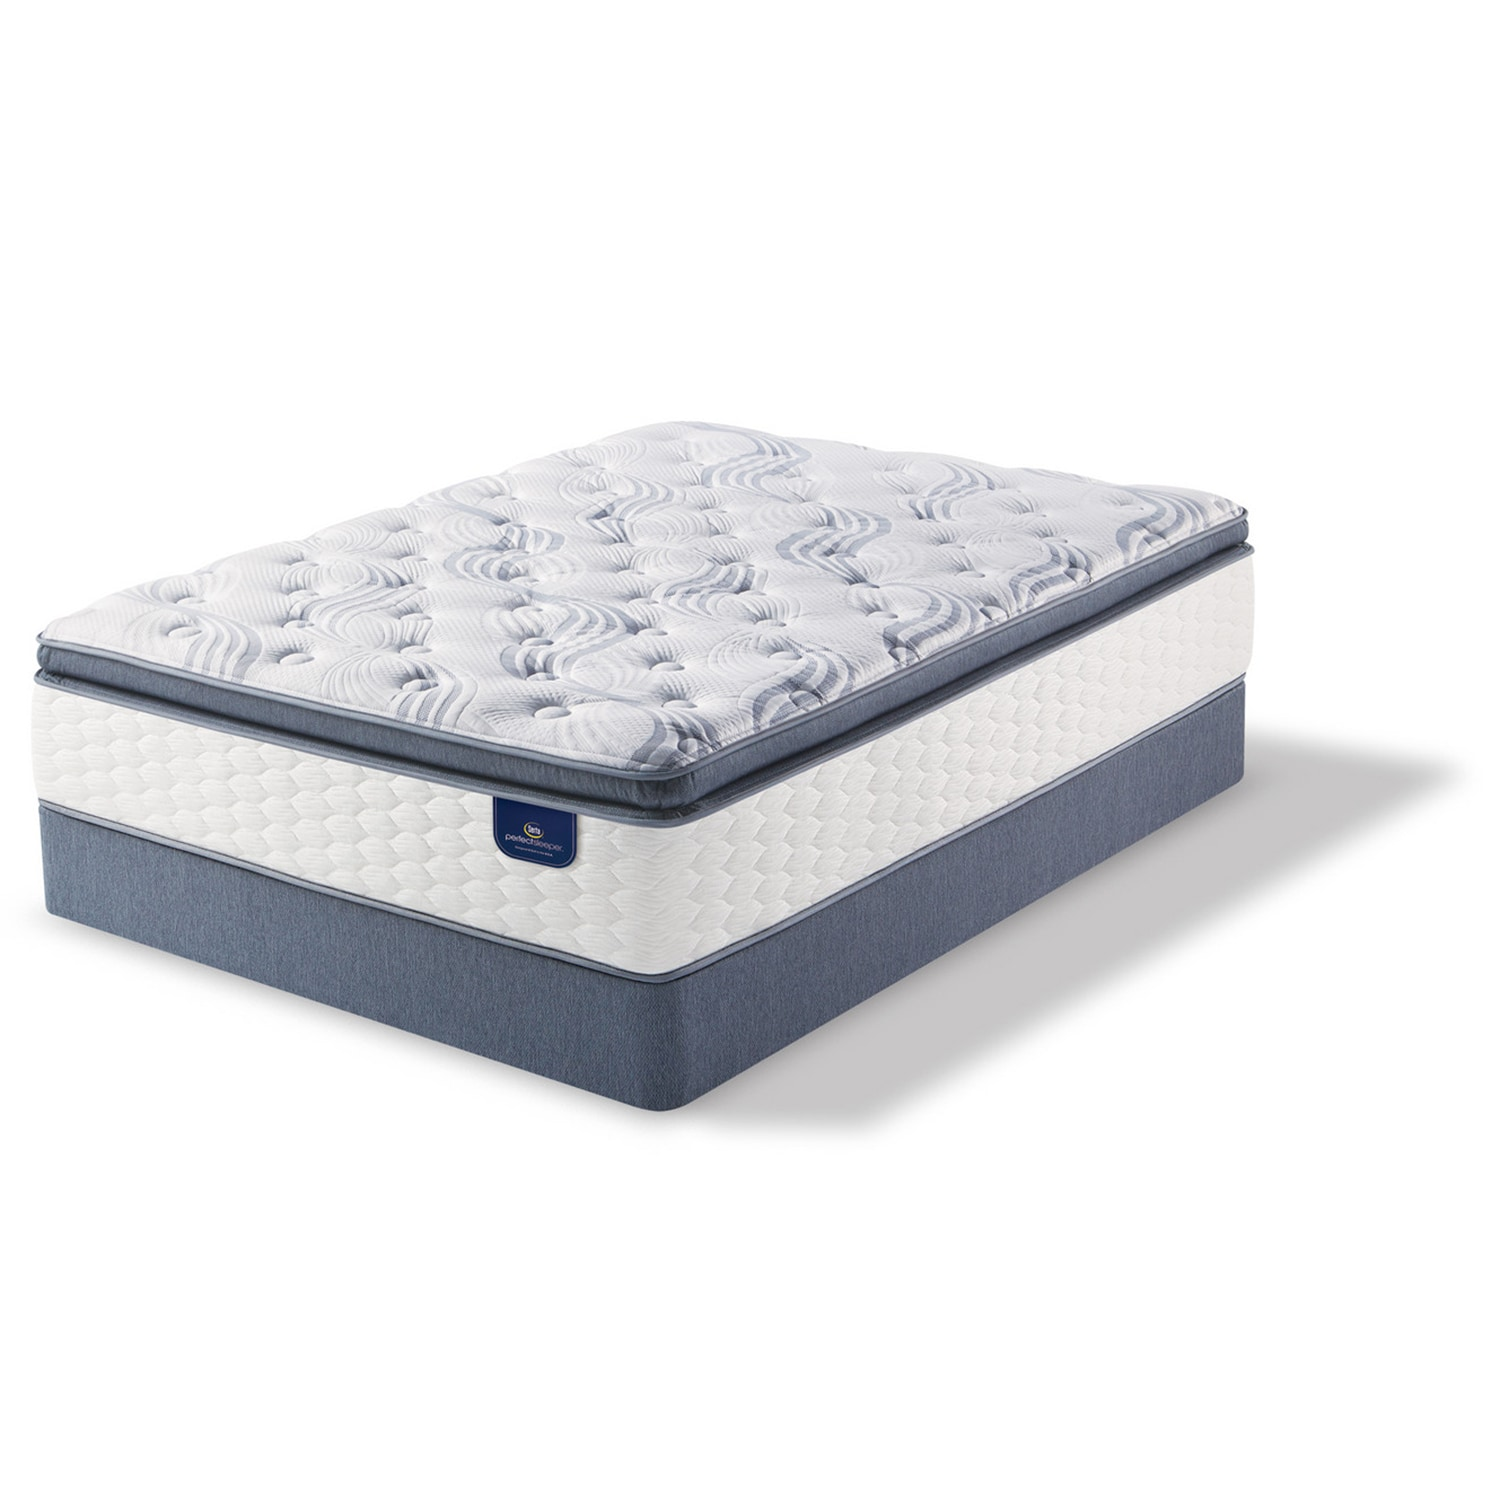 luxury tx simmons products firm andros androslfptlorescutaway beautysleep mattress depot topper top pillow